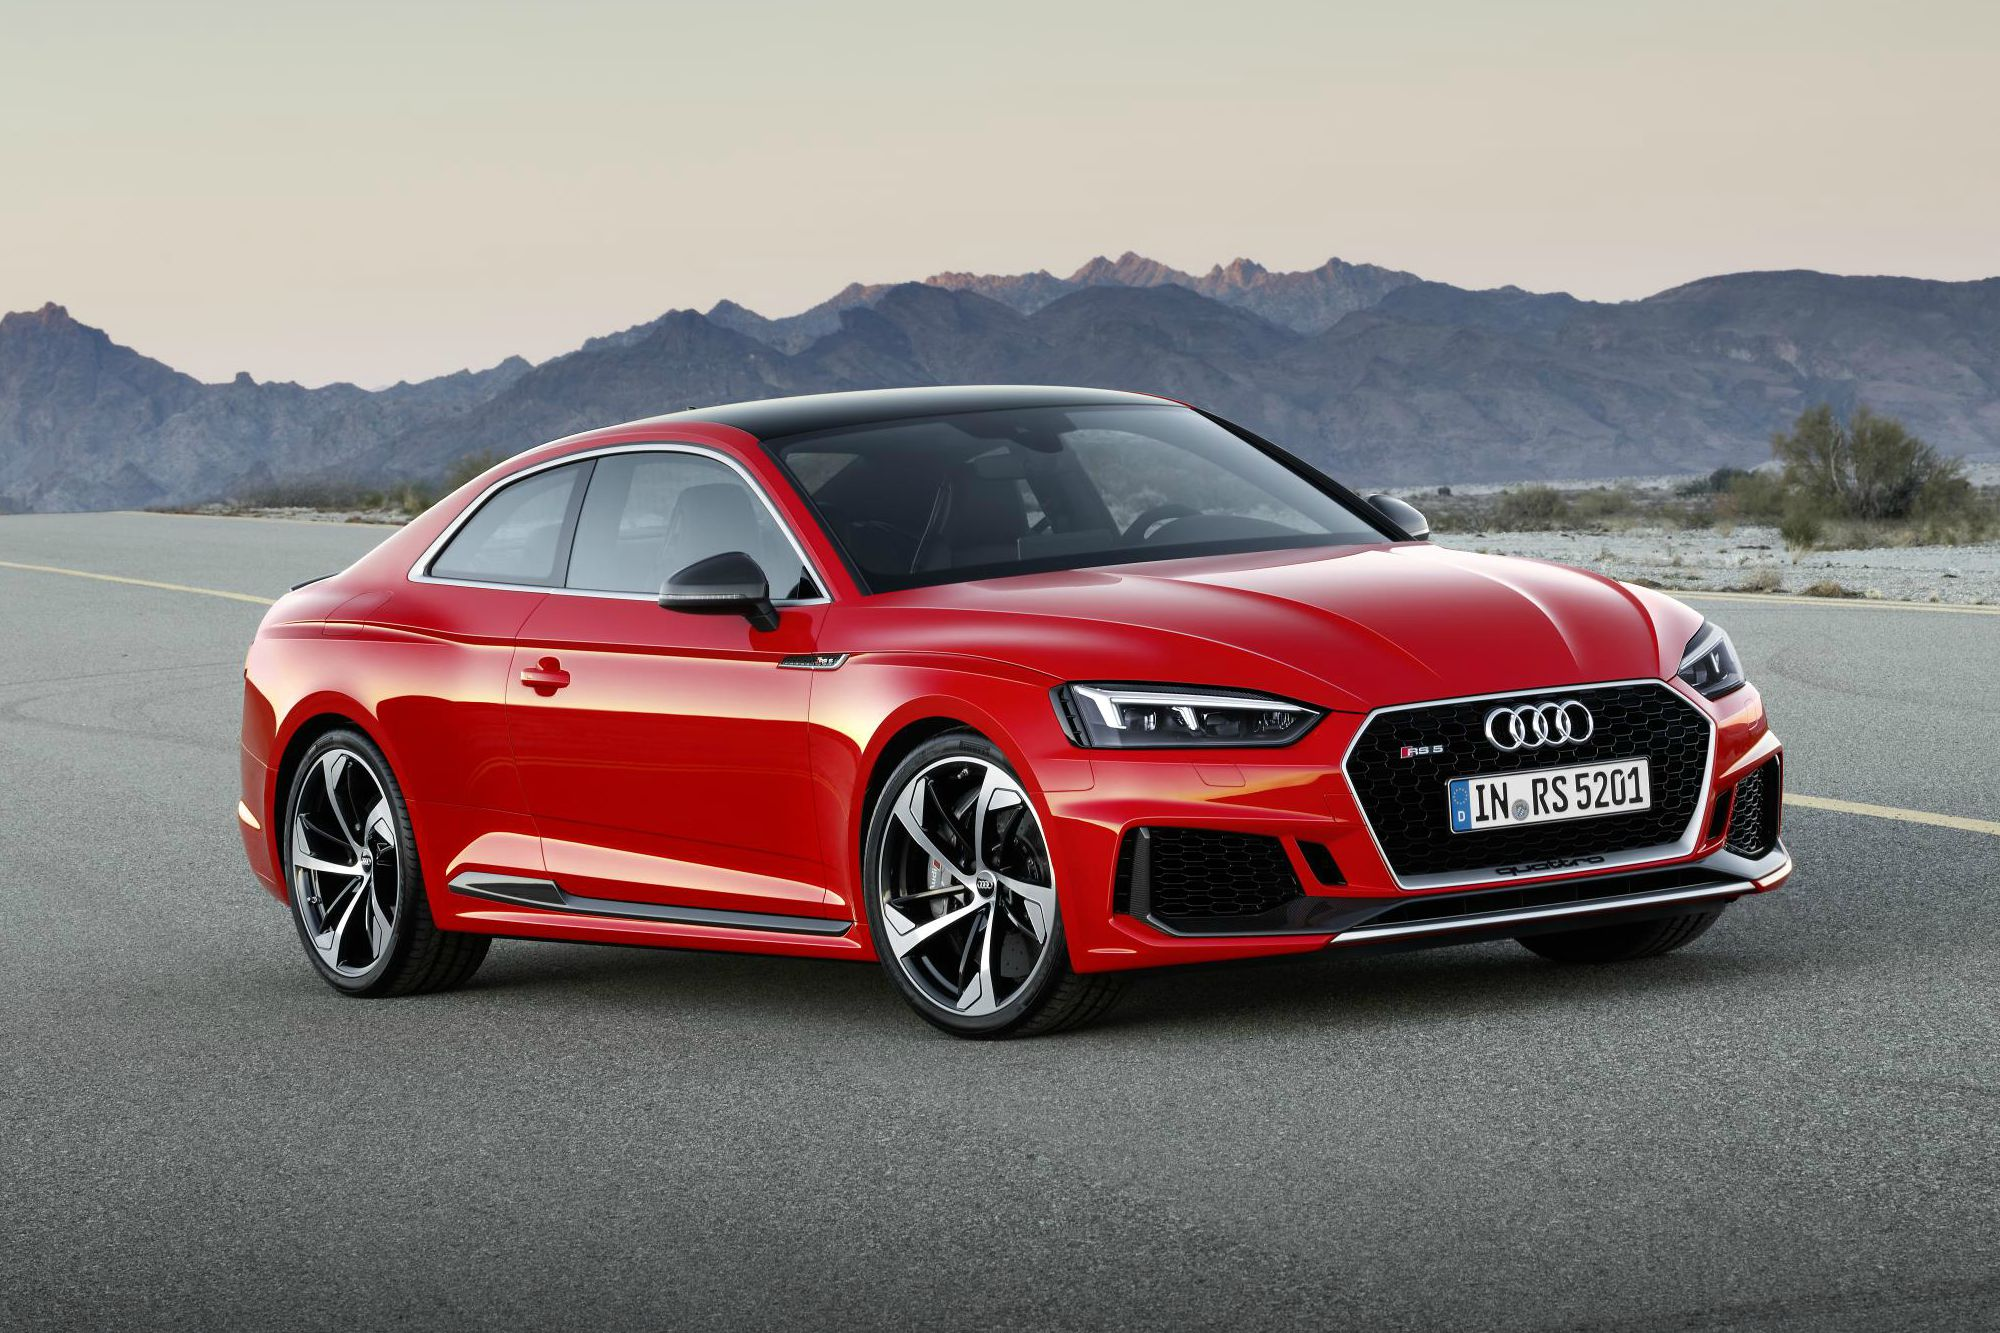 2017 audi rs 5 coupe coming this summer boasts 444bhp car keys. Black Bedroom Furniture Sets. Home Design Ideas